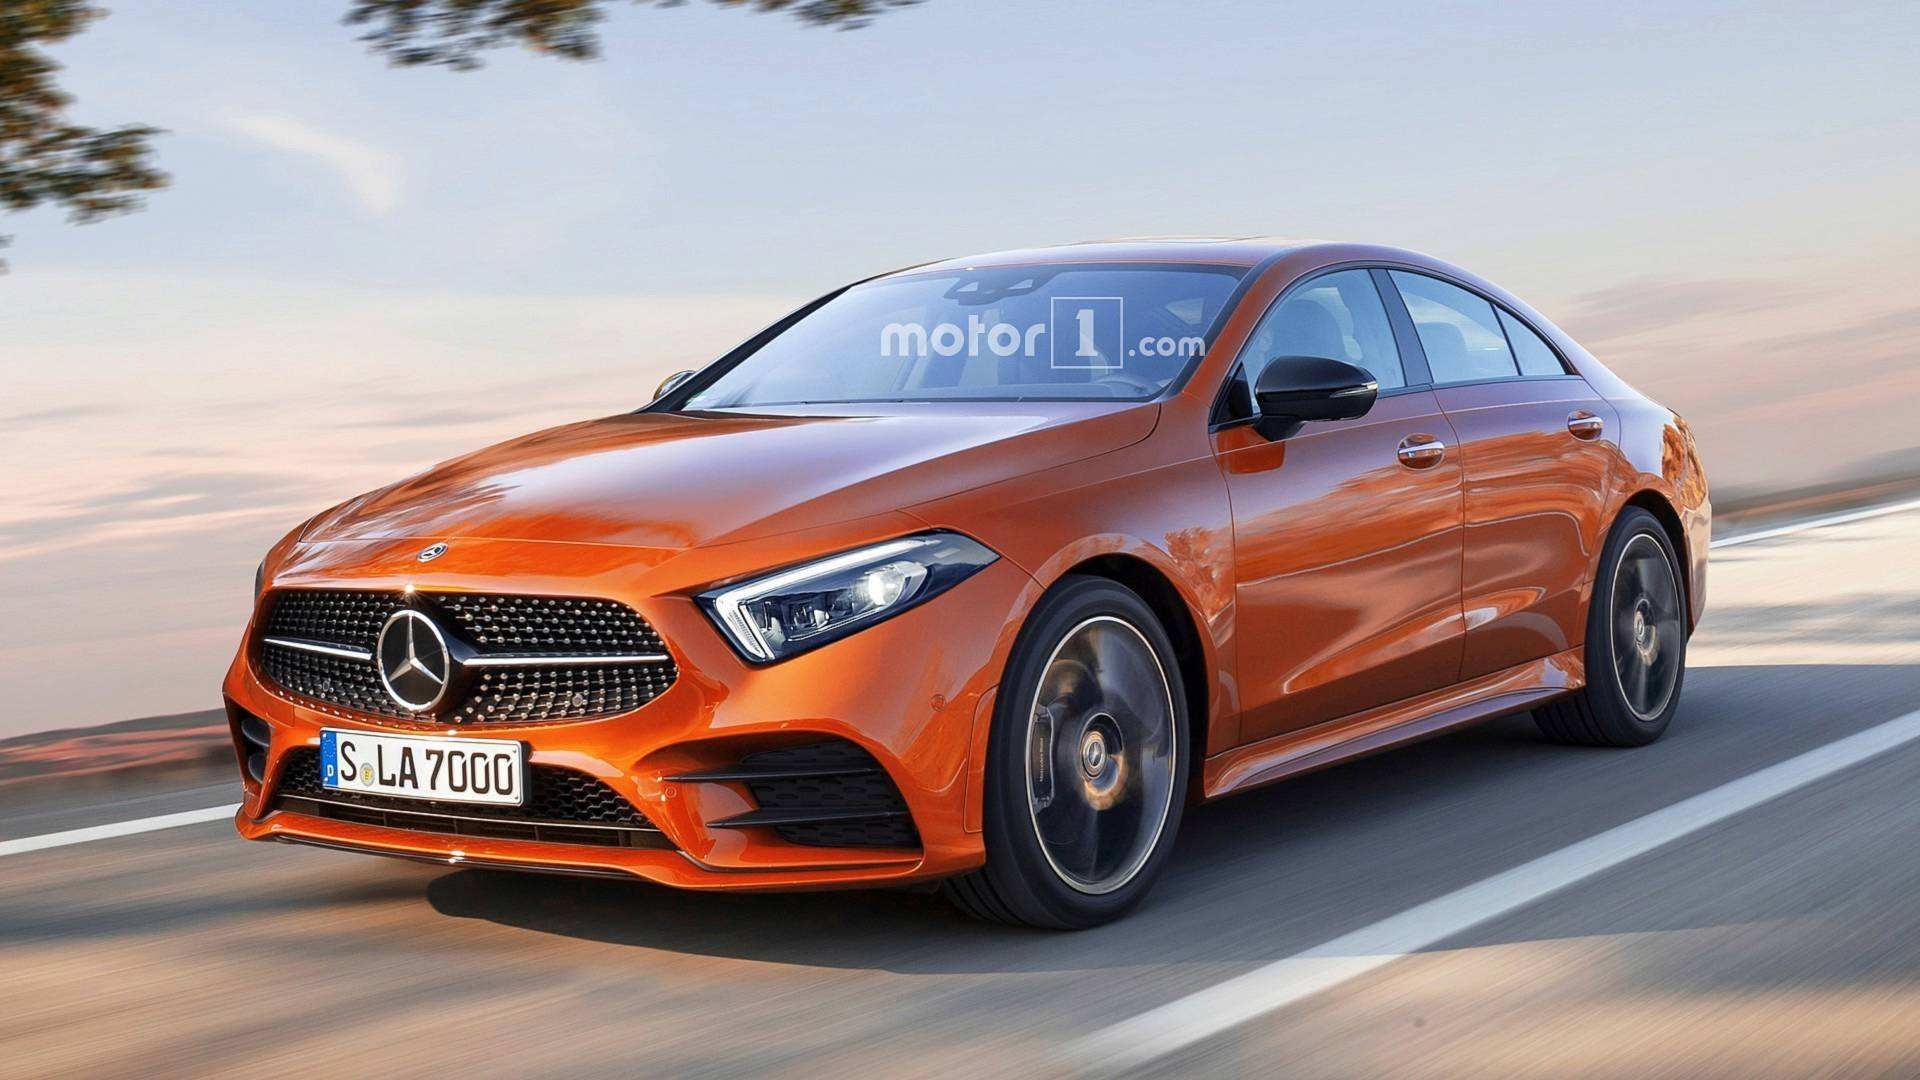 85 The New Cla Mercedes 2020 Overview with New Cla Mercedes 2020